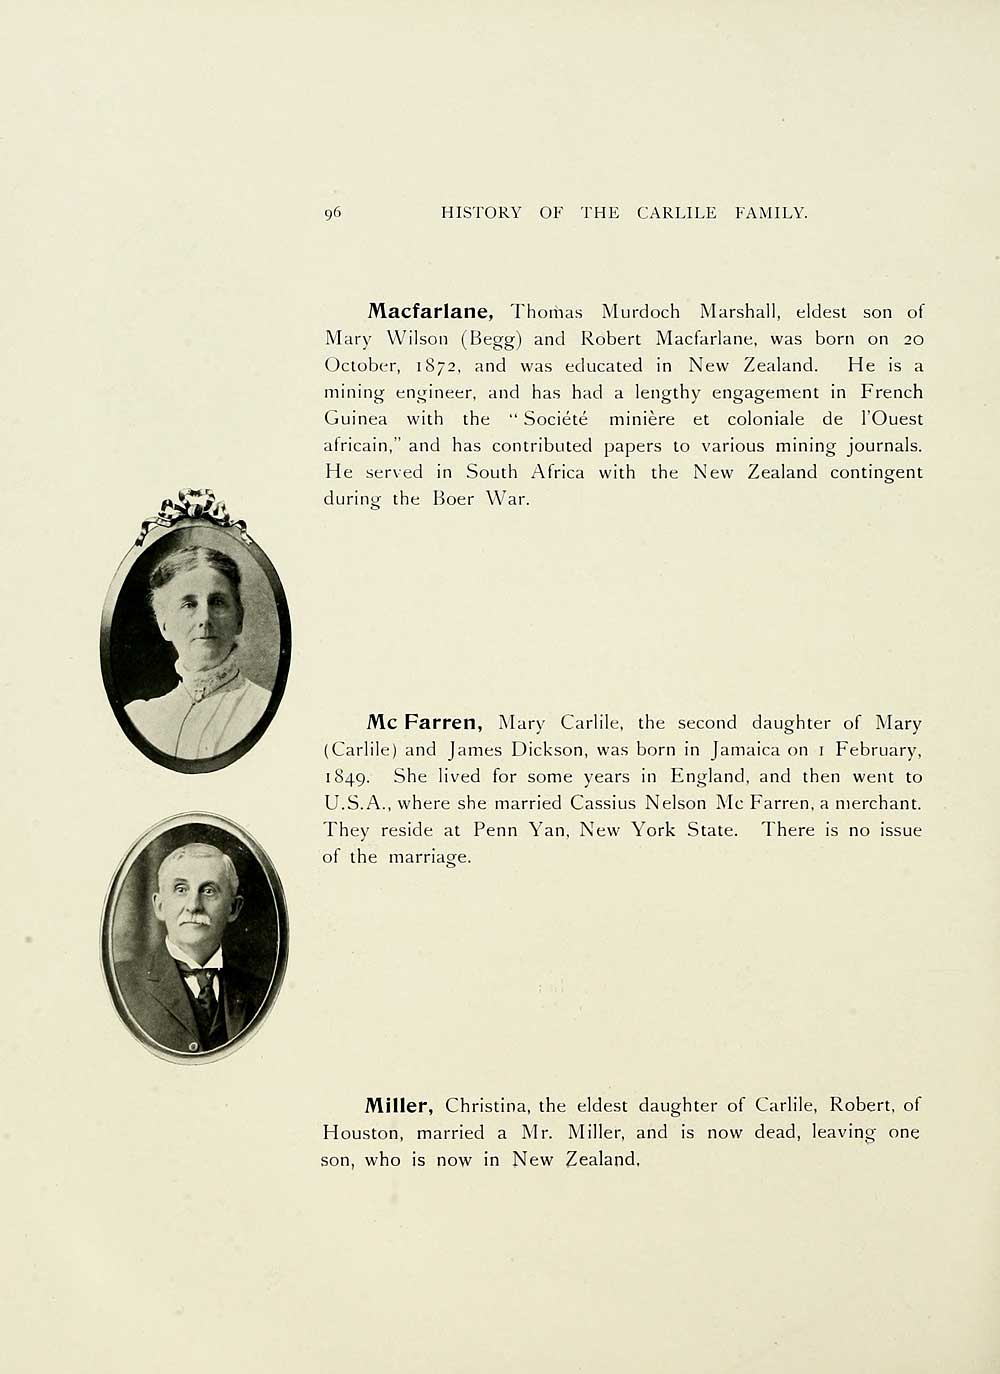 150) Page 96 - History of the Carlile family - Histories of